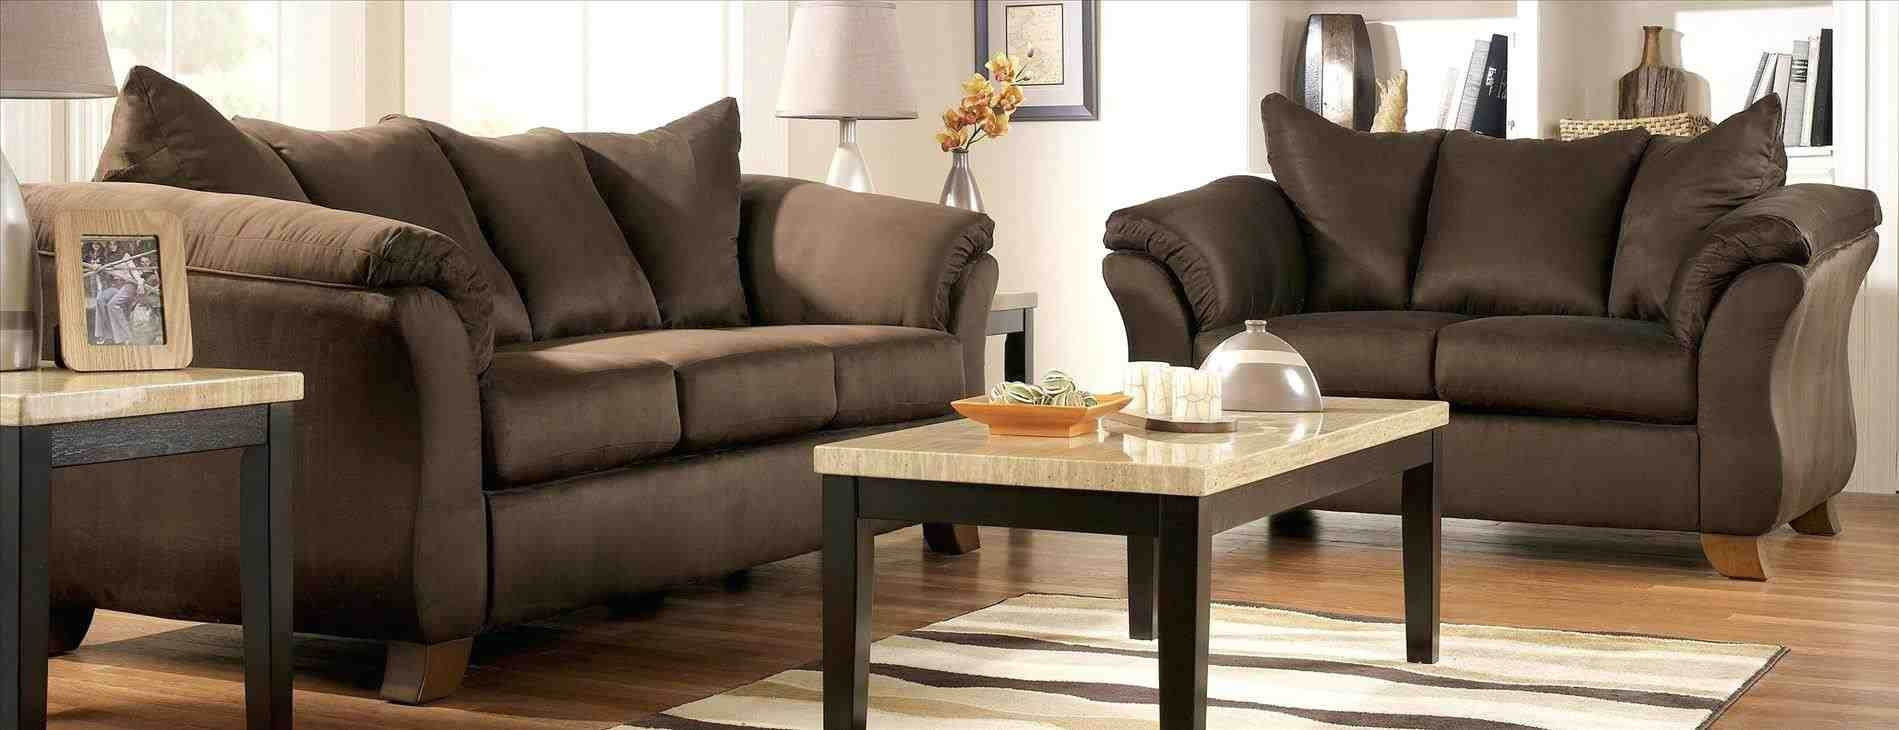 Cheap Sofa India Modern Sofa Set Designs In Kenya Sets Bangalore Malaysia I Discount Living Room Furniture Cheap Living Room Sets Cheap Living Room Furniture